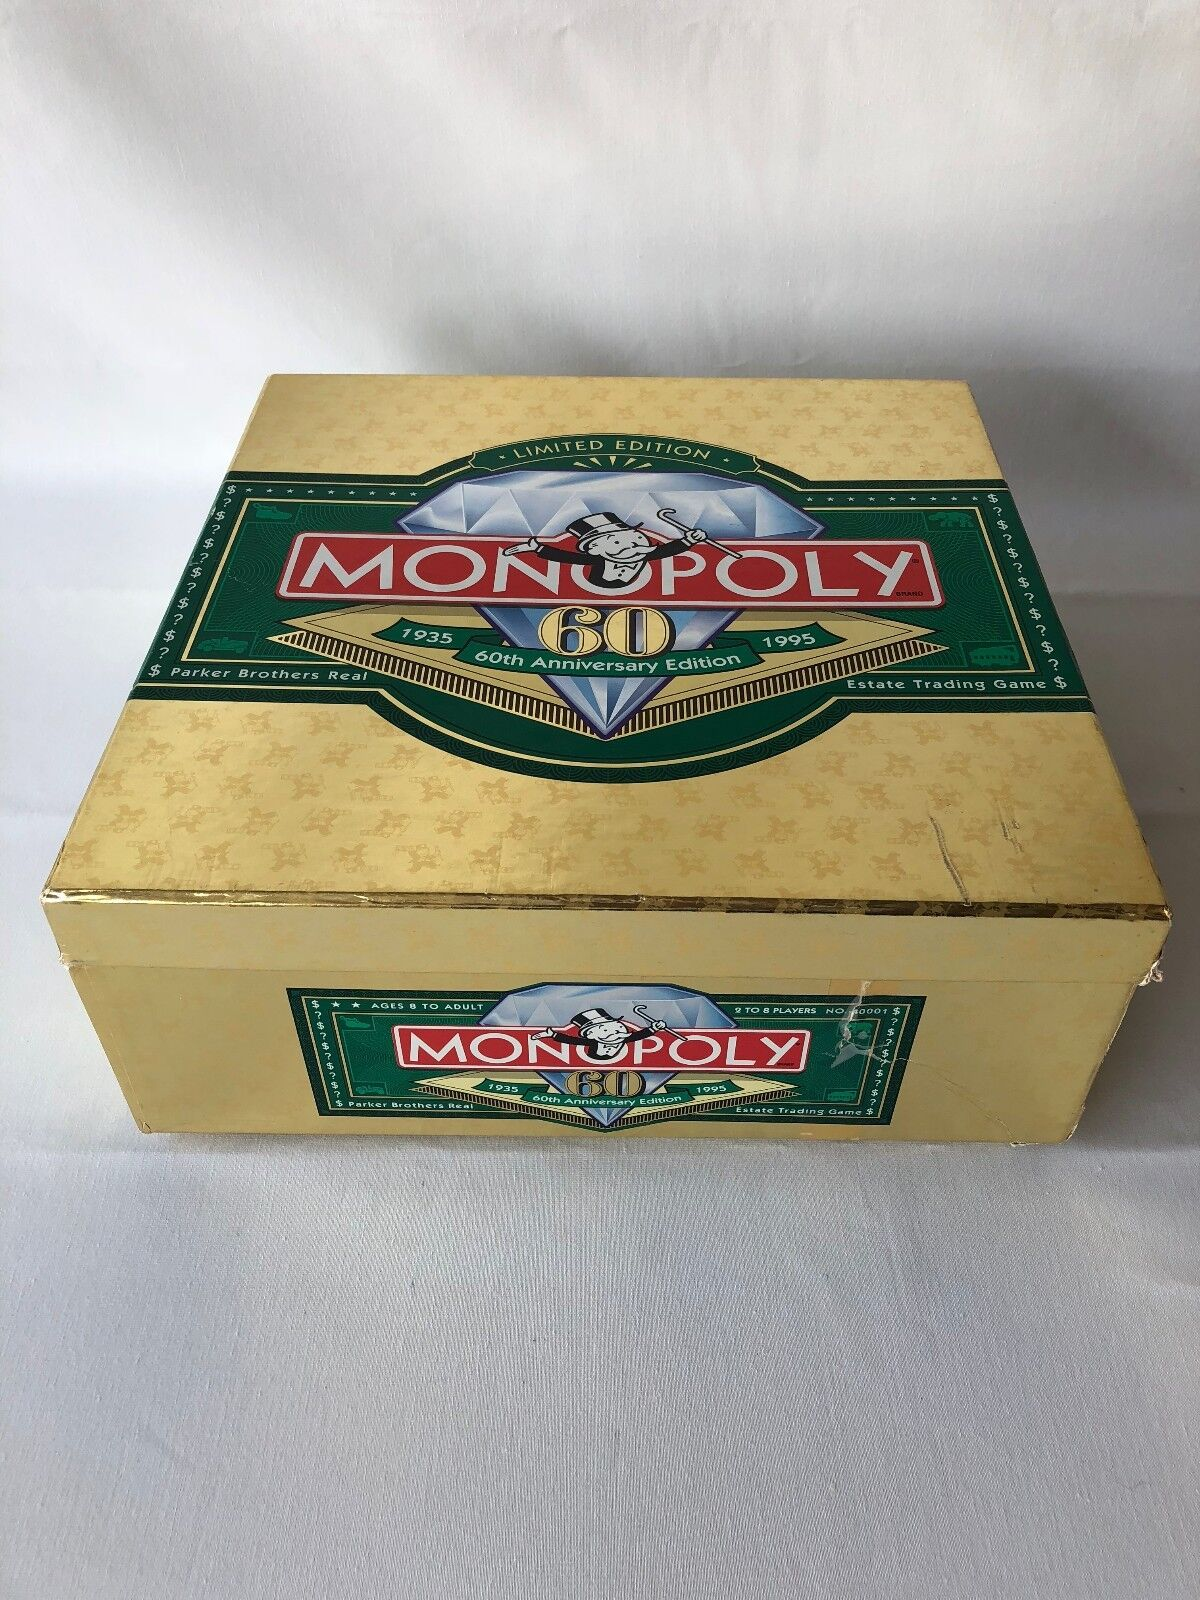 Monopoly 60th anniversary Limited Edition board game